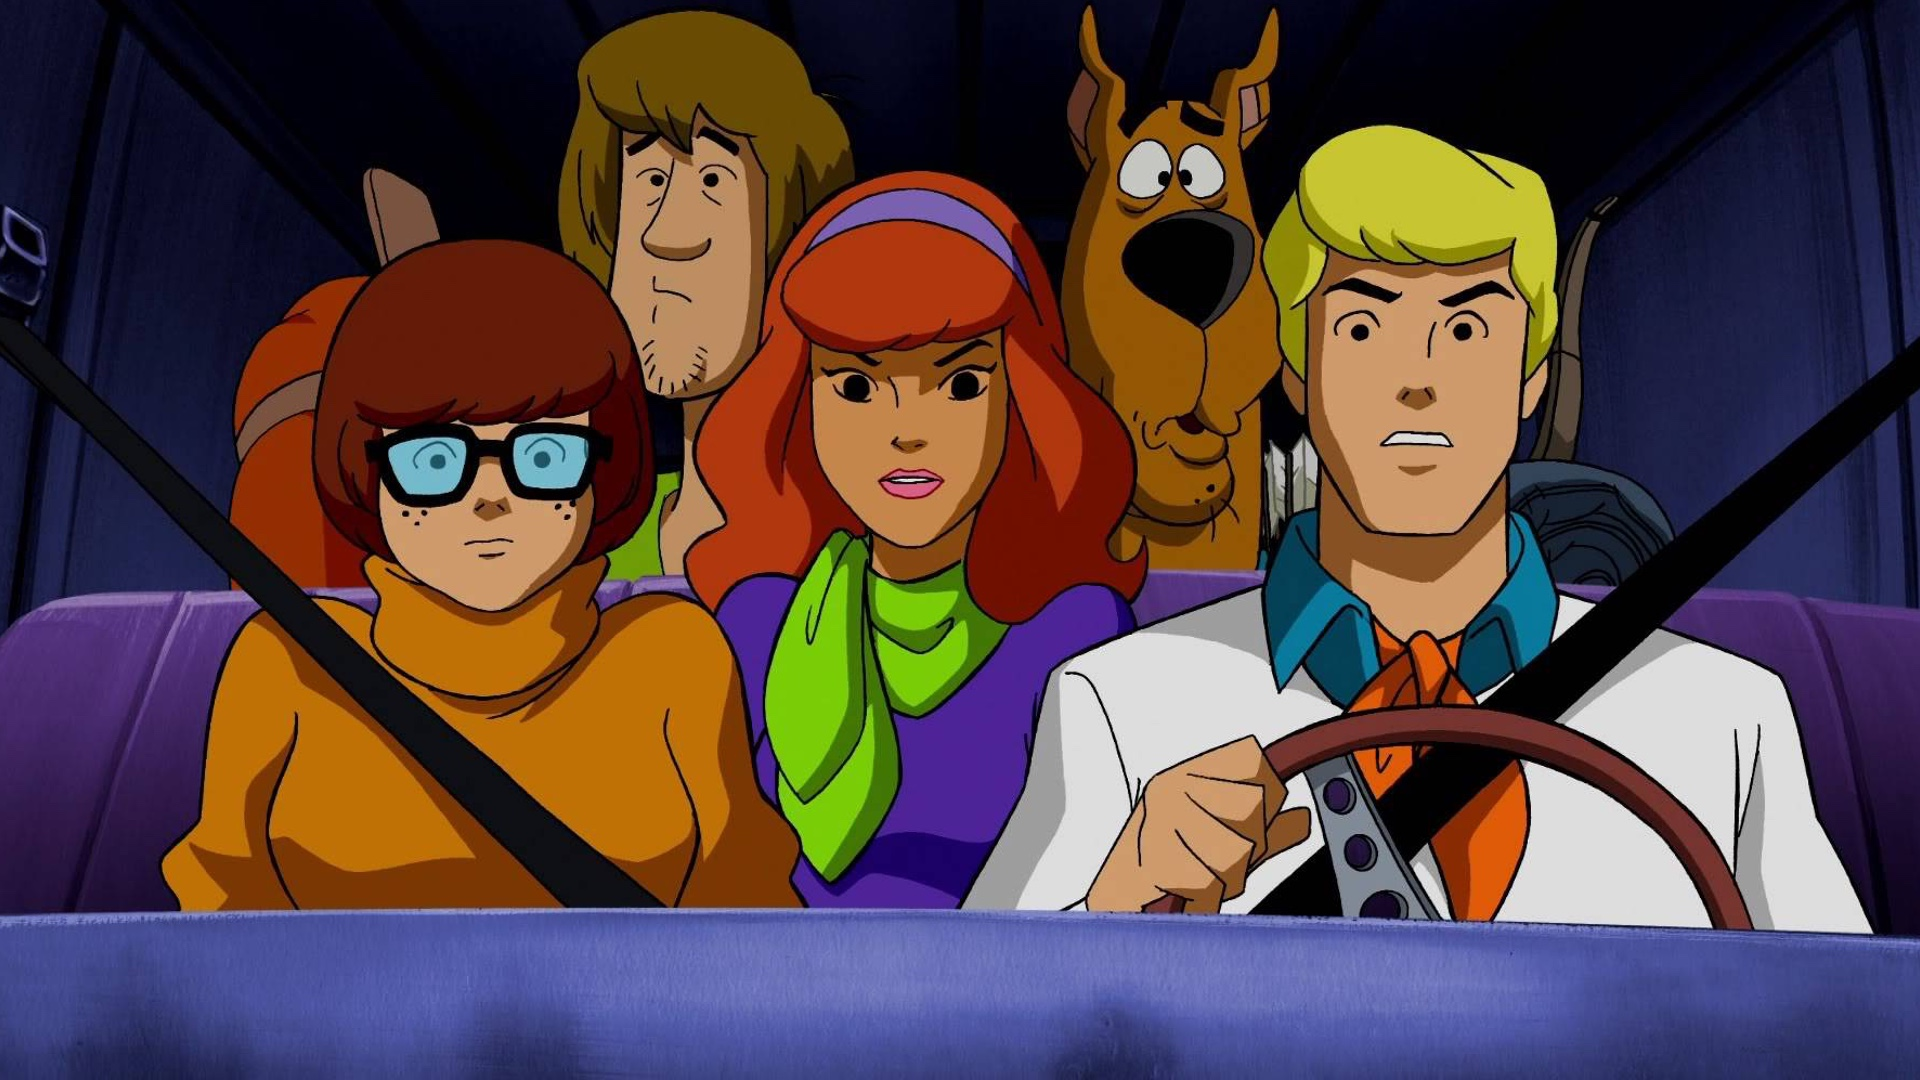 zac-efron-and-amanda-seyfriedcast-in-wb-animations-new-scooby-doo-film-scoob-social.jpg